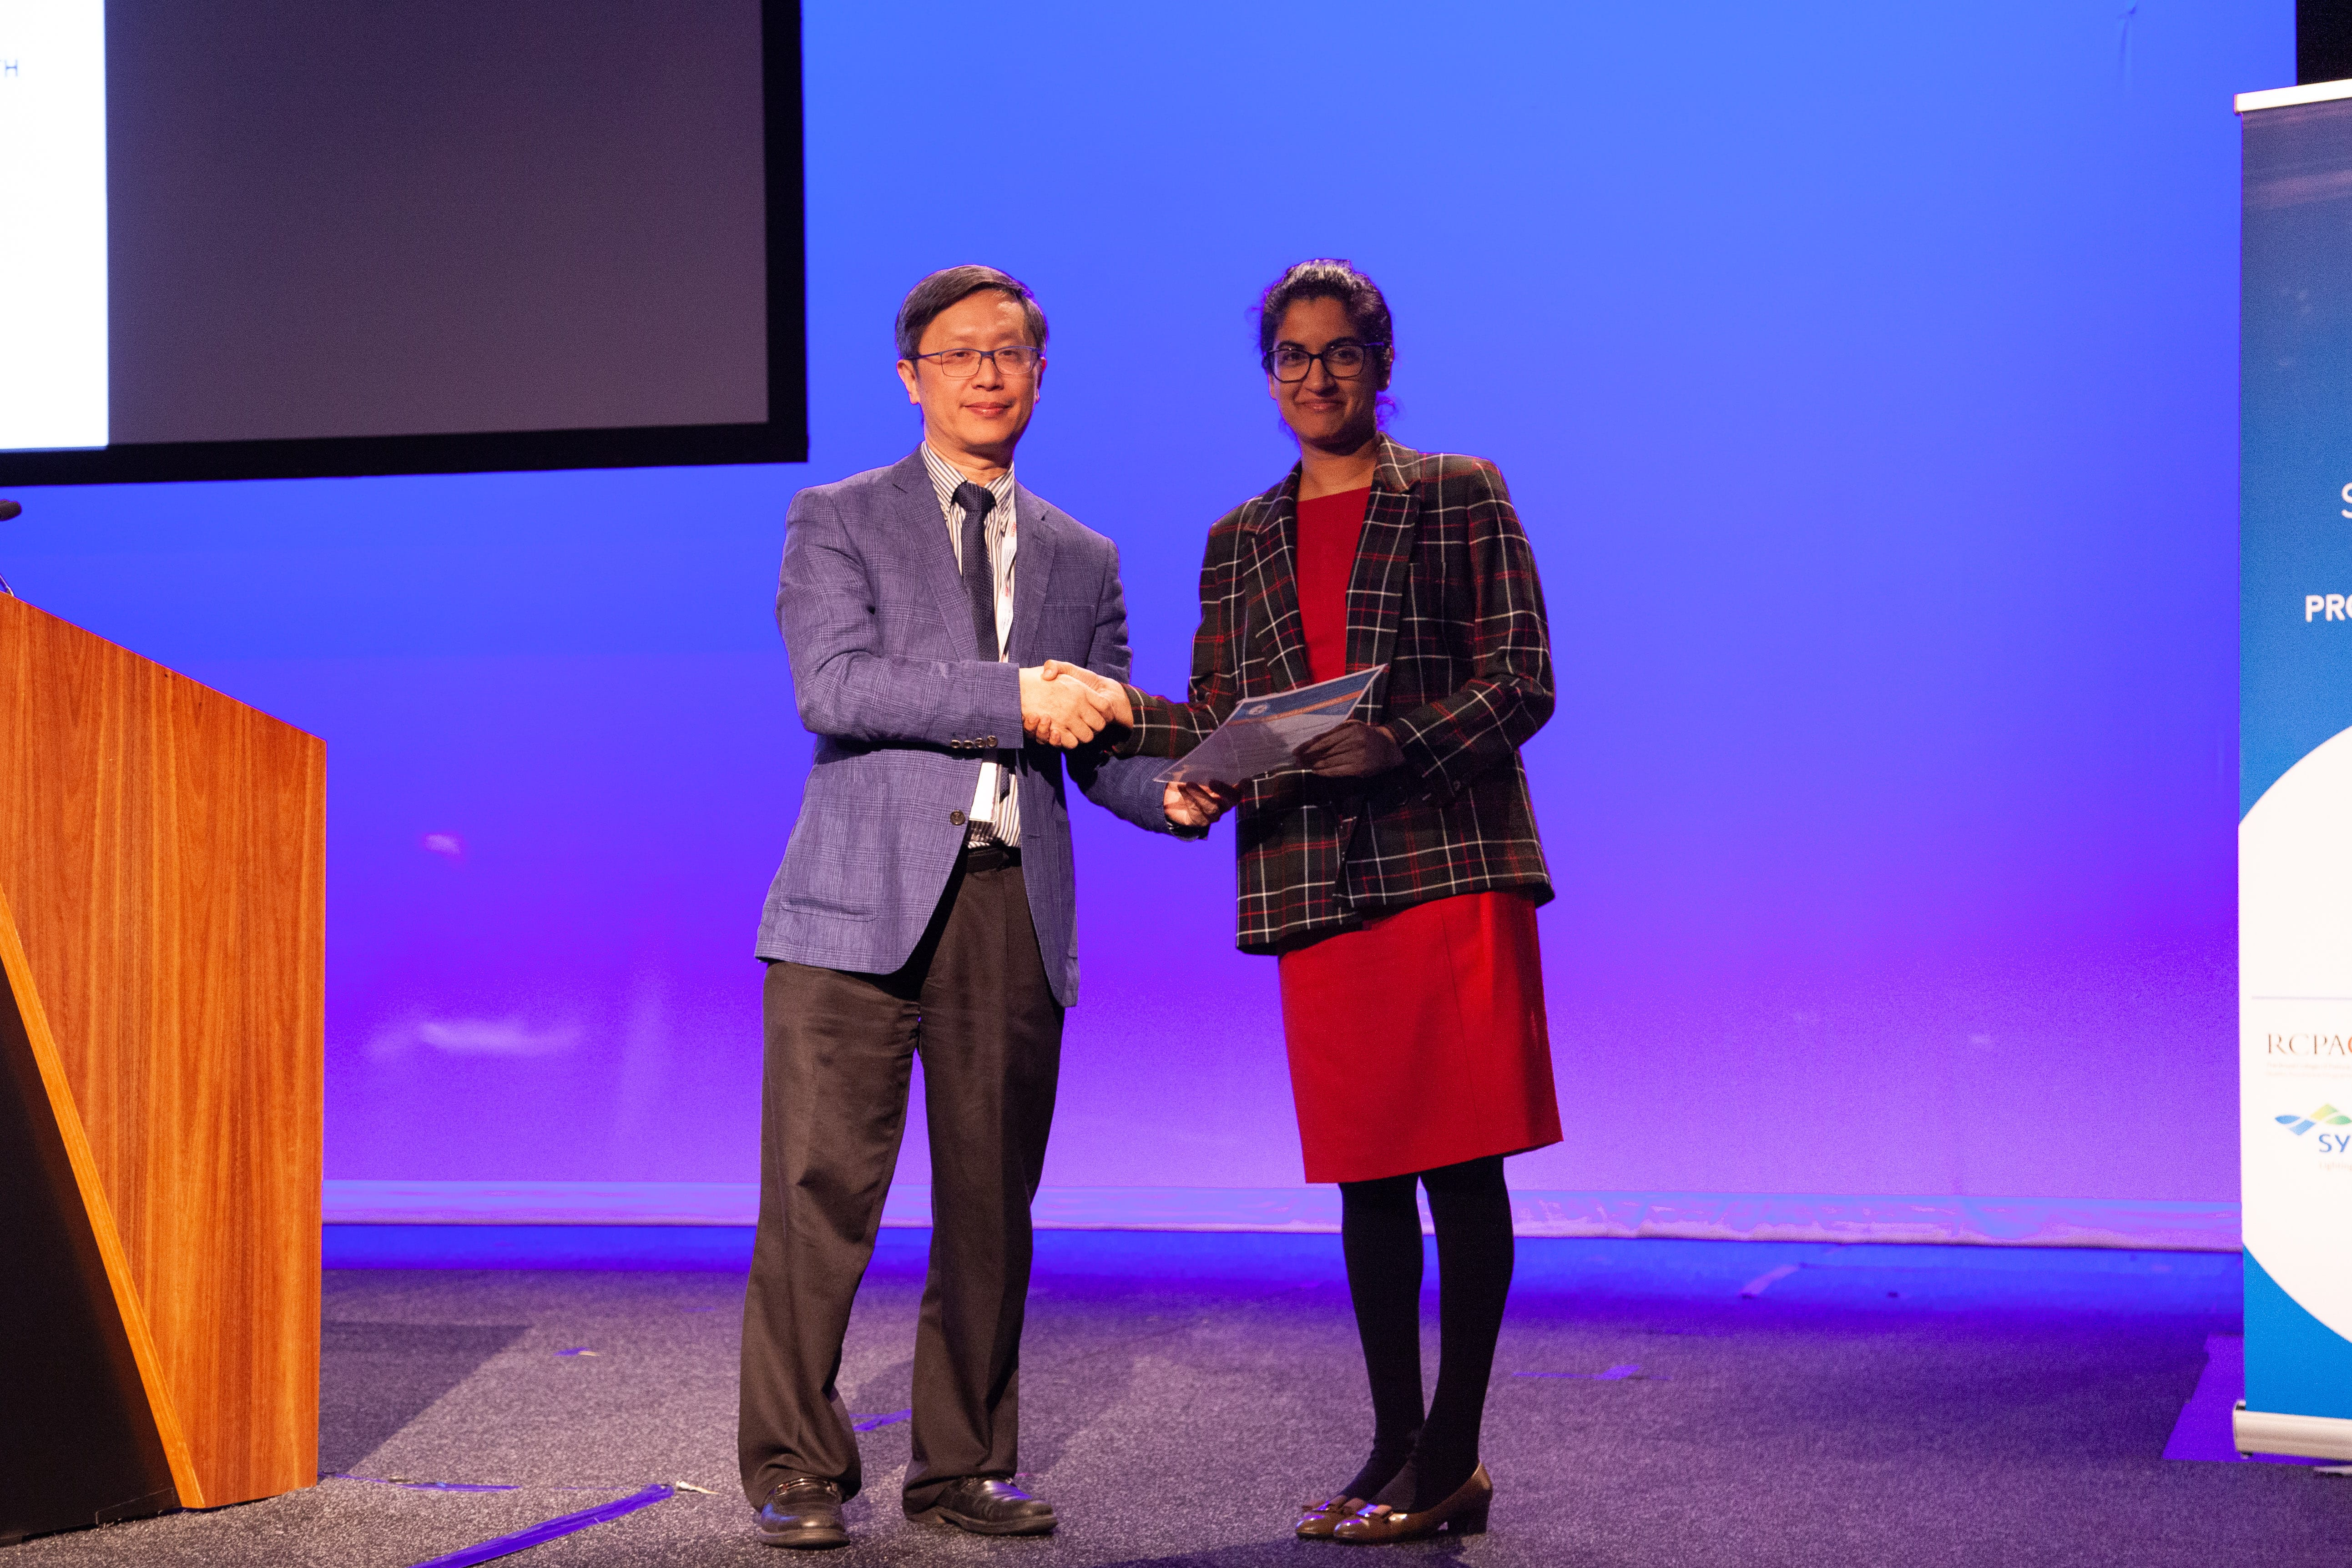 Alfred Lam presenting 1st Commentation Prize Winner in Abstract Poster Pathologist Category to Laveniya Satgunaseelan